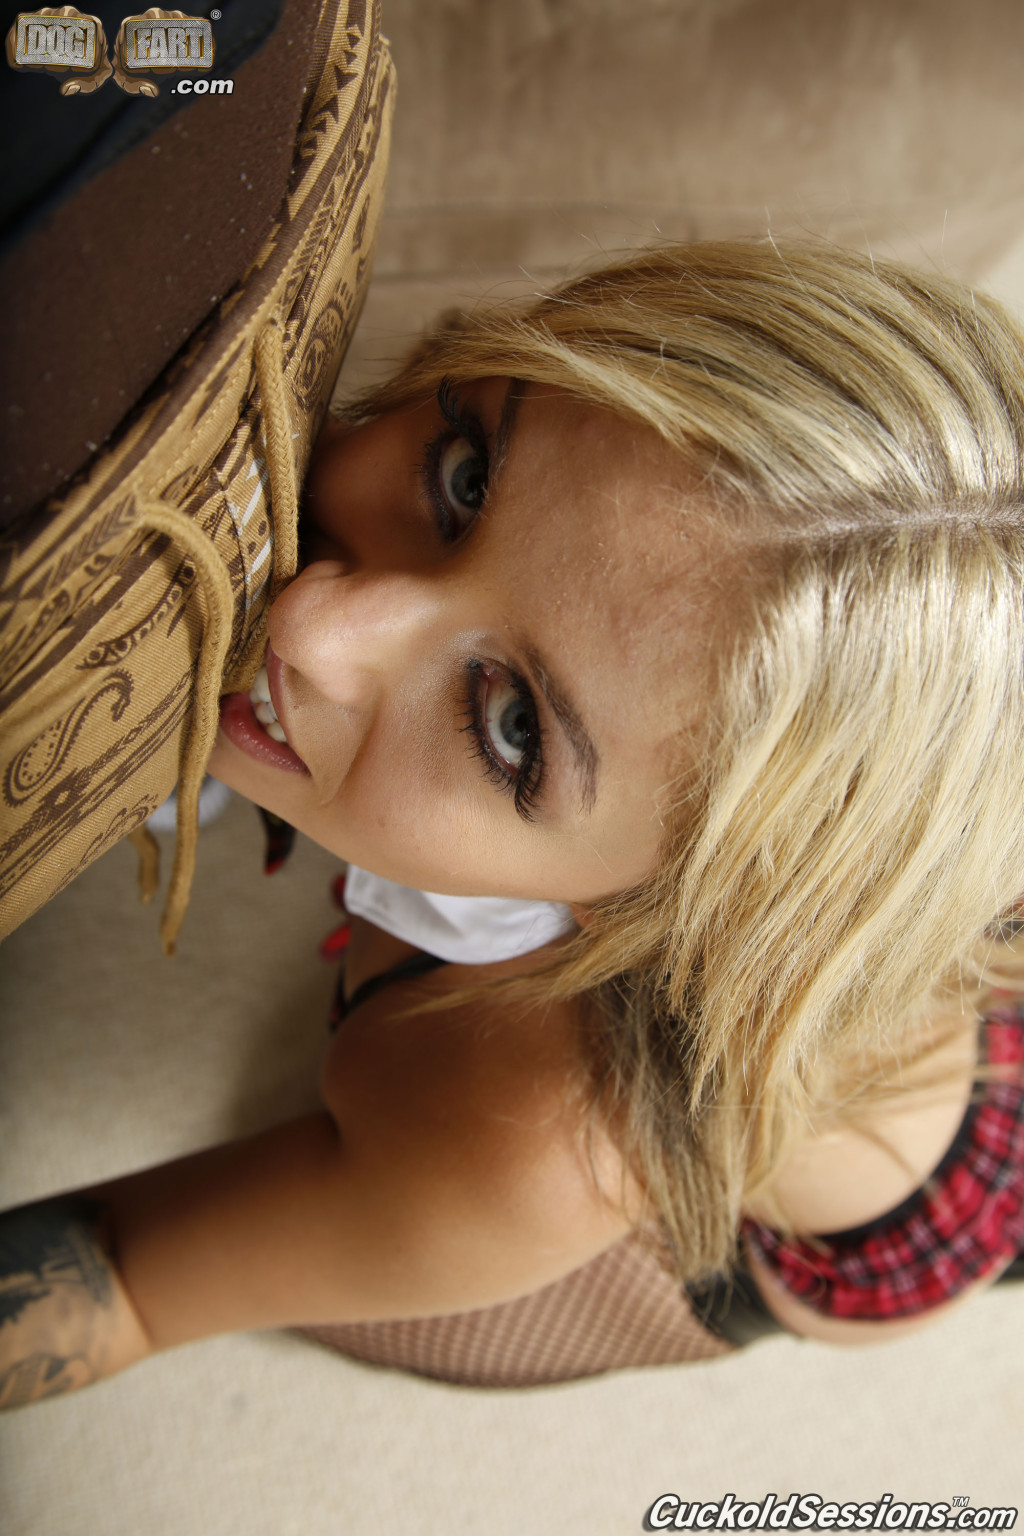 Madelyn monroe has intercourse swarthy guy whilst her bf watches